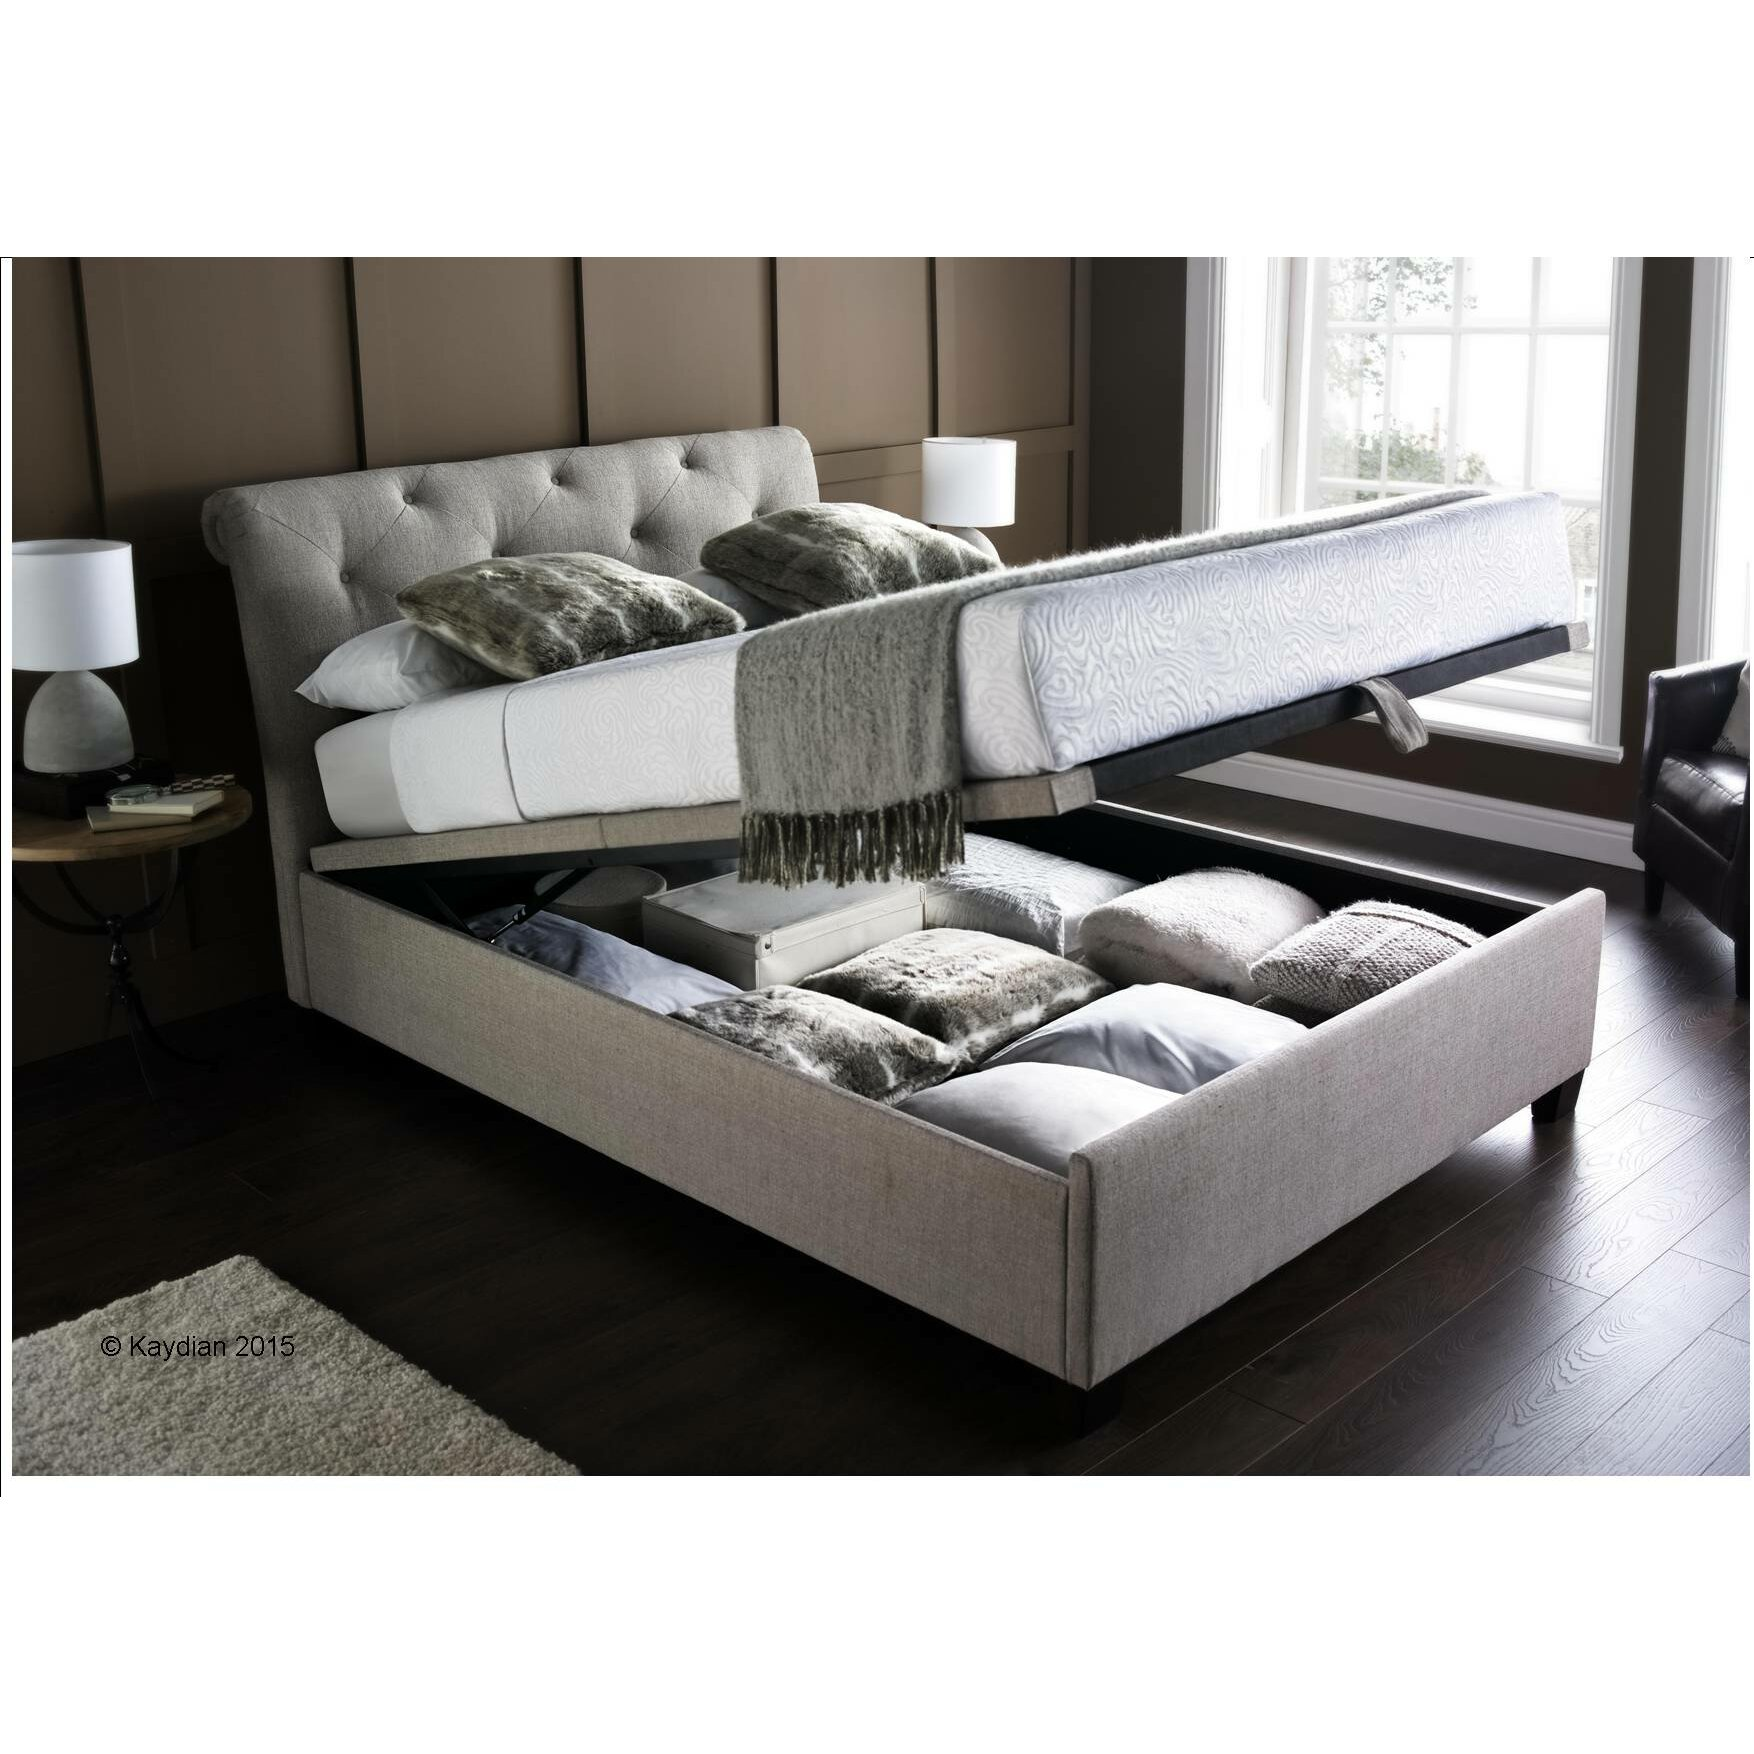 Home loft concept anchuelo upholstered ottoman bed for Concept beds